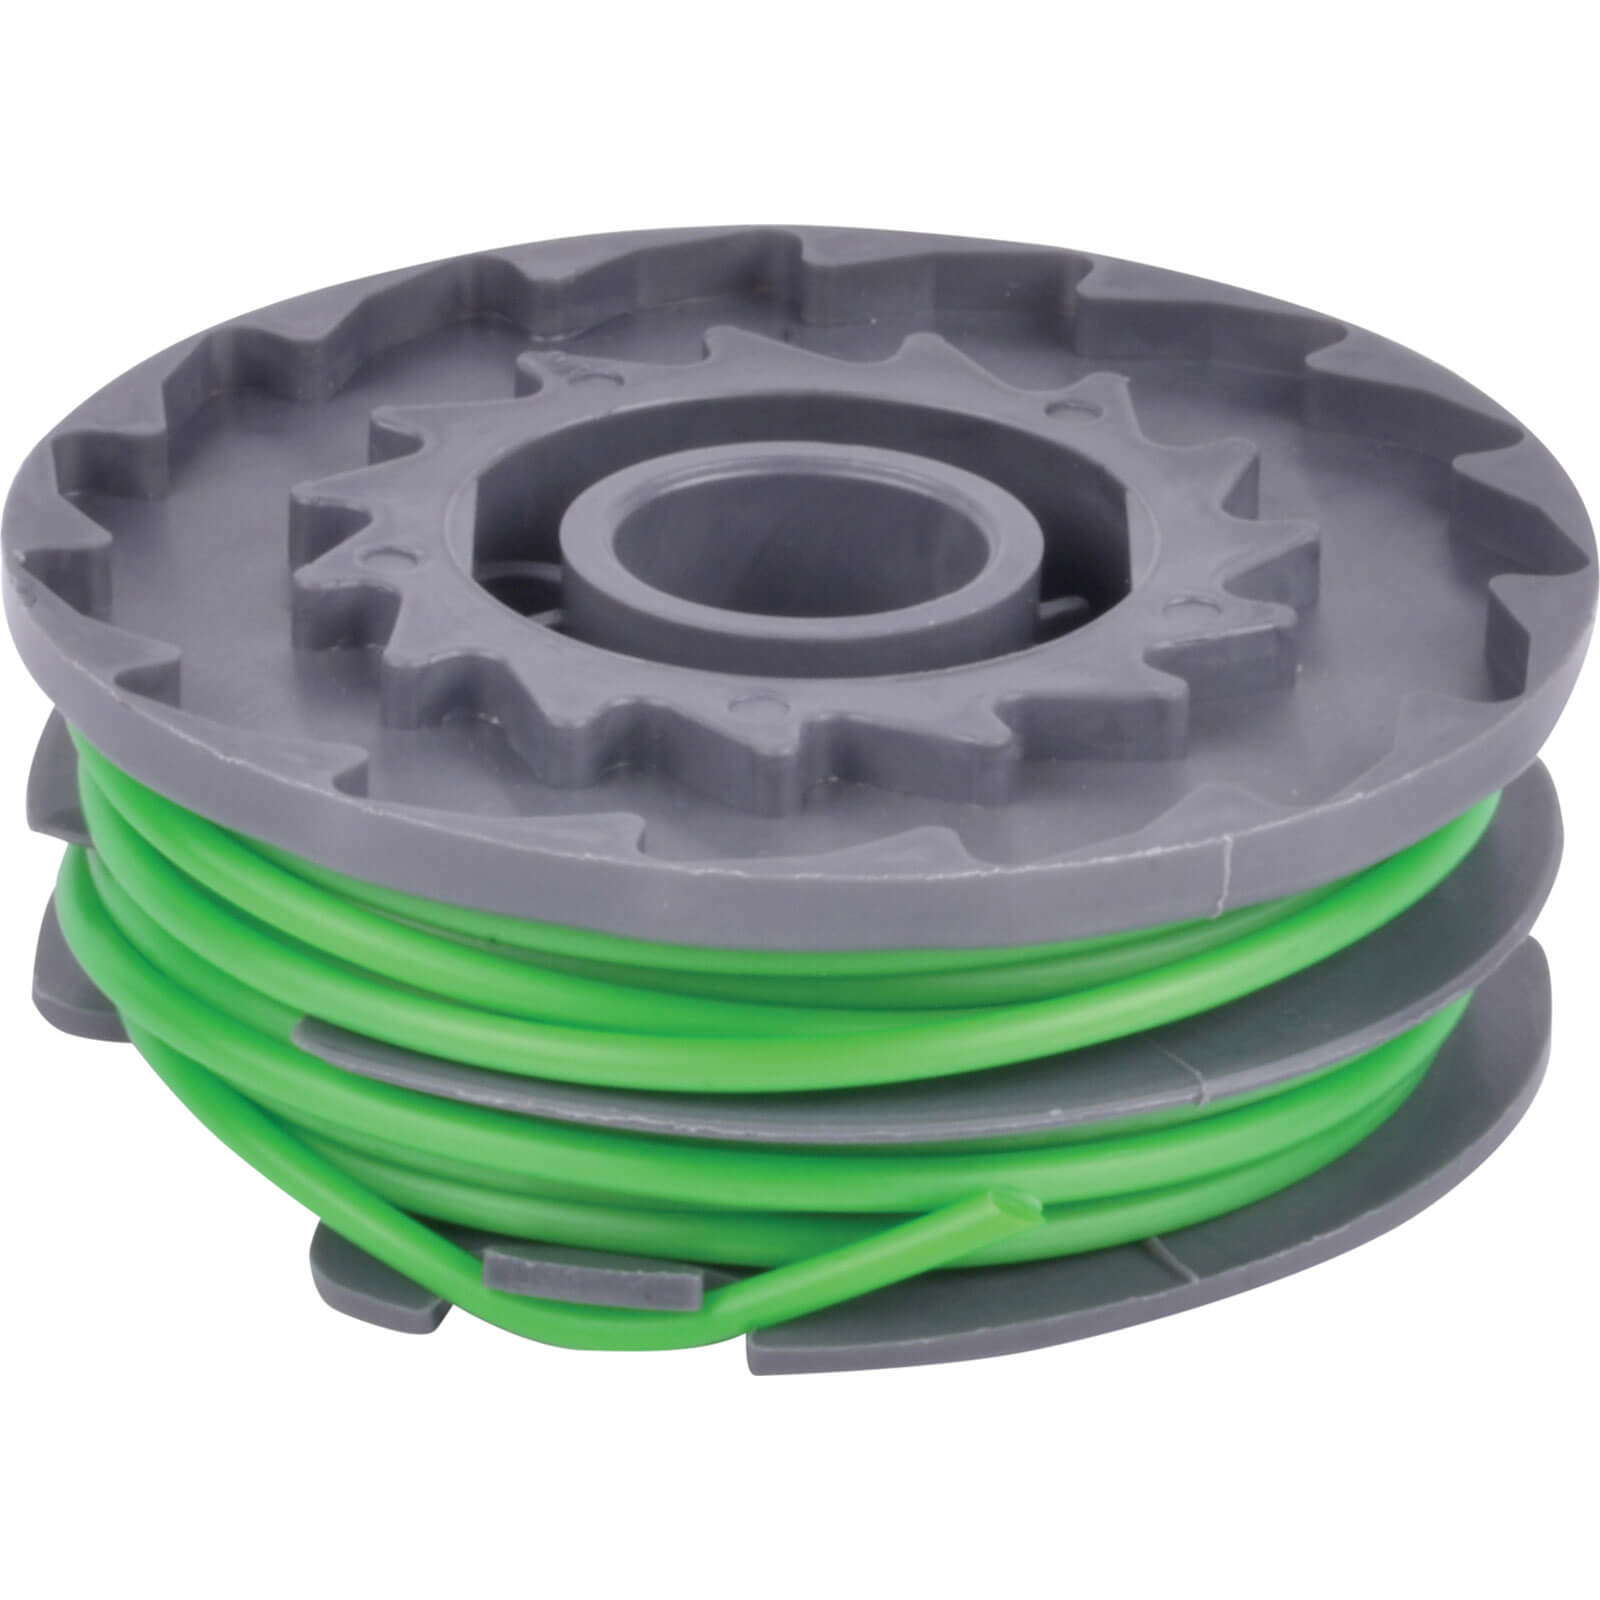 ALM 2mm x 3m Spool & Line for Flymo Grass Trimmers